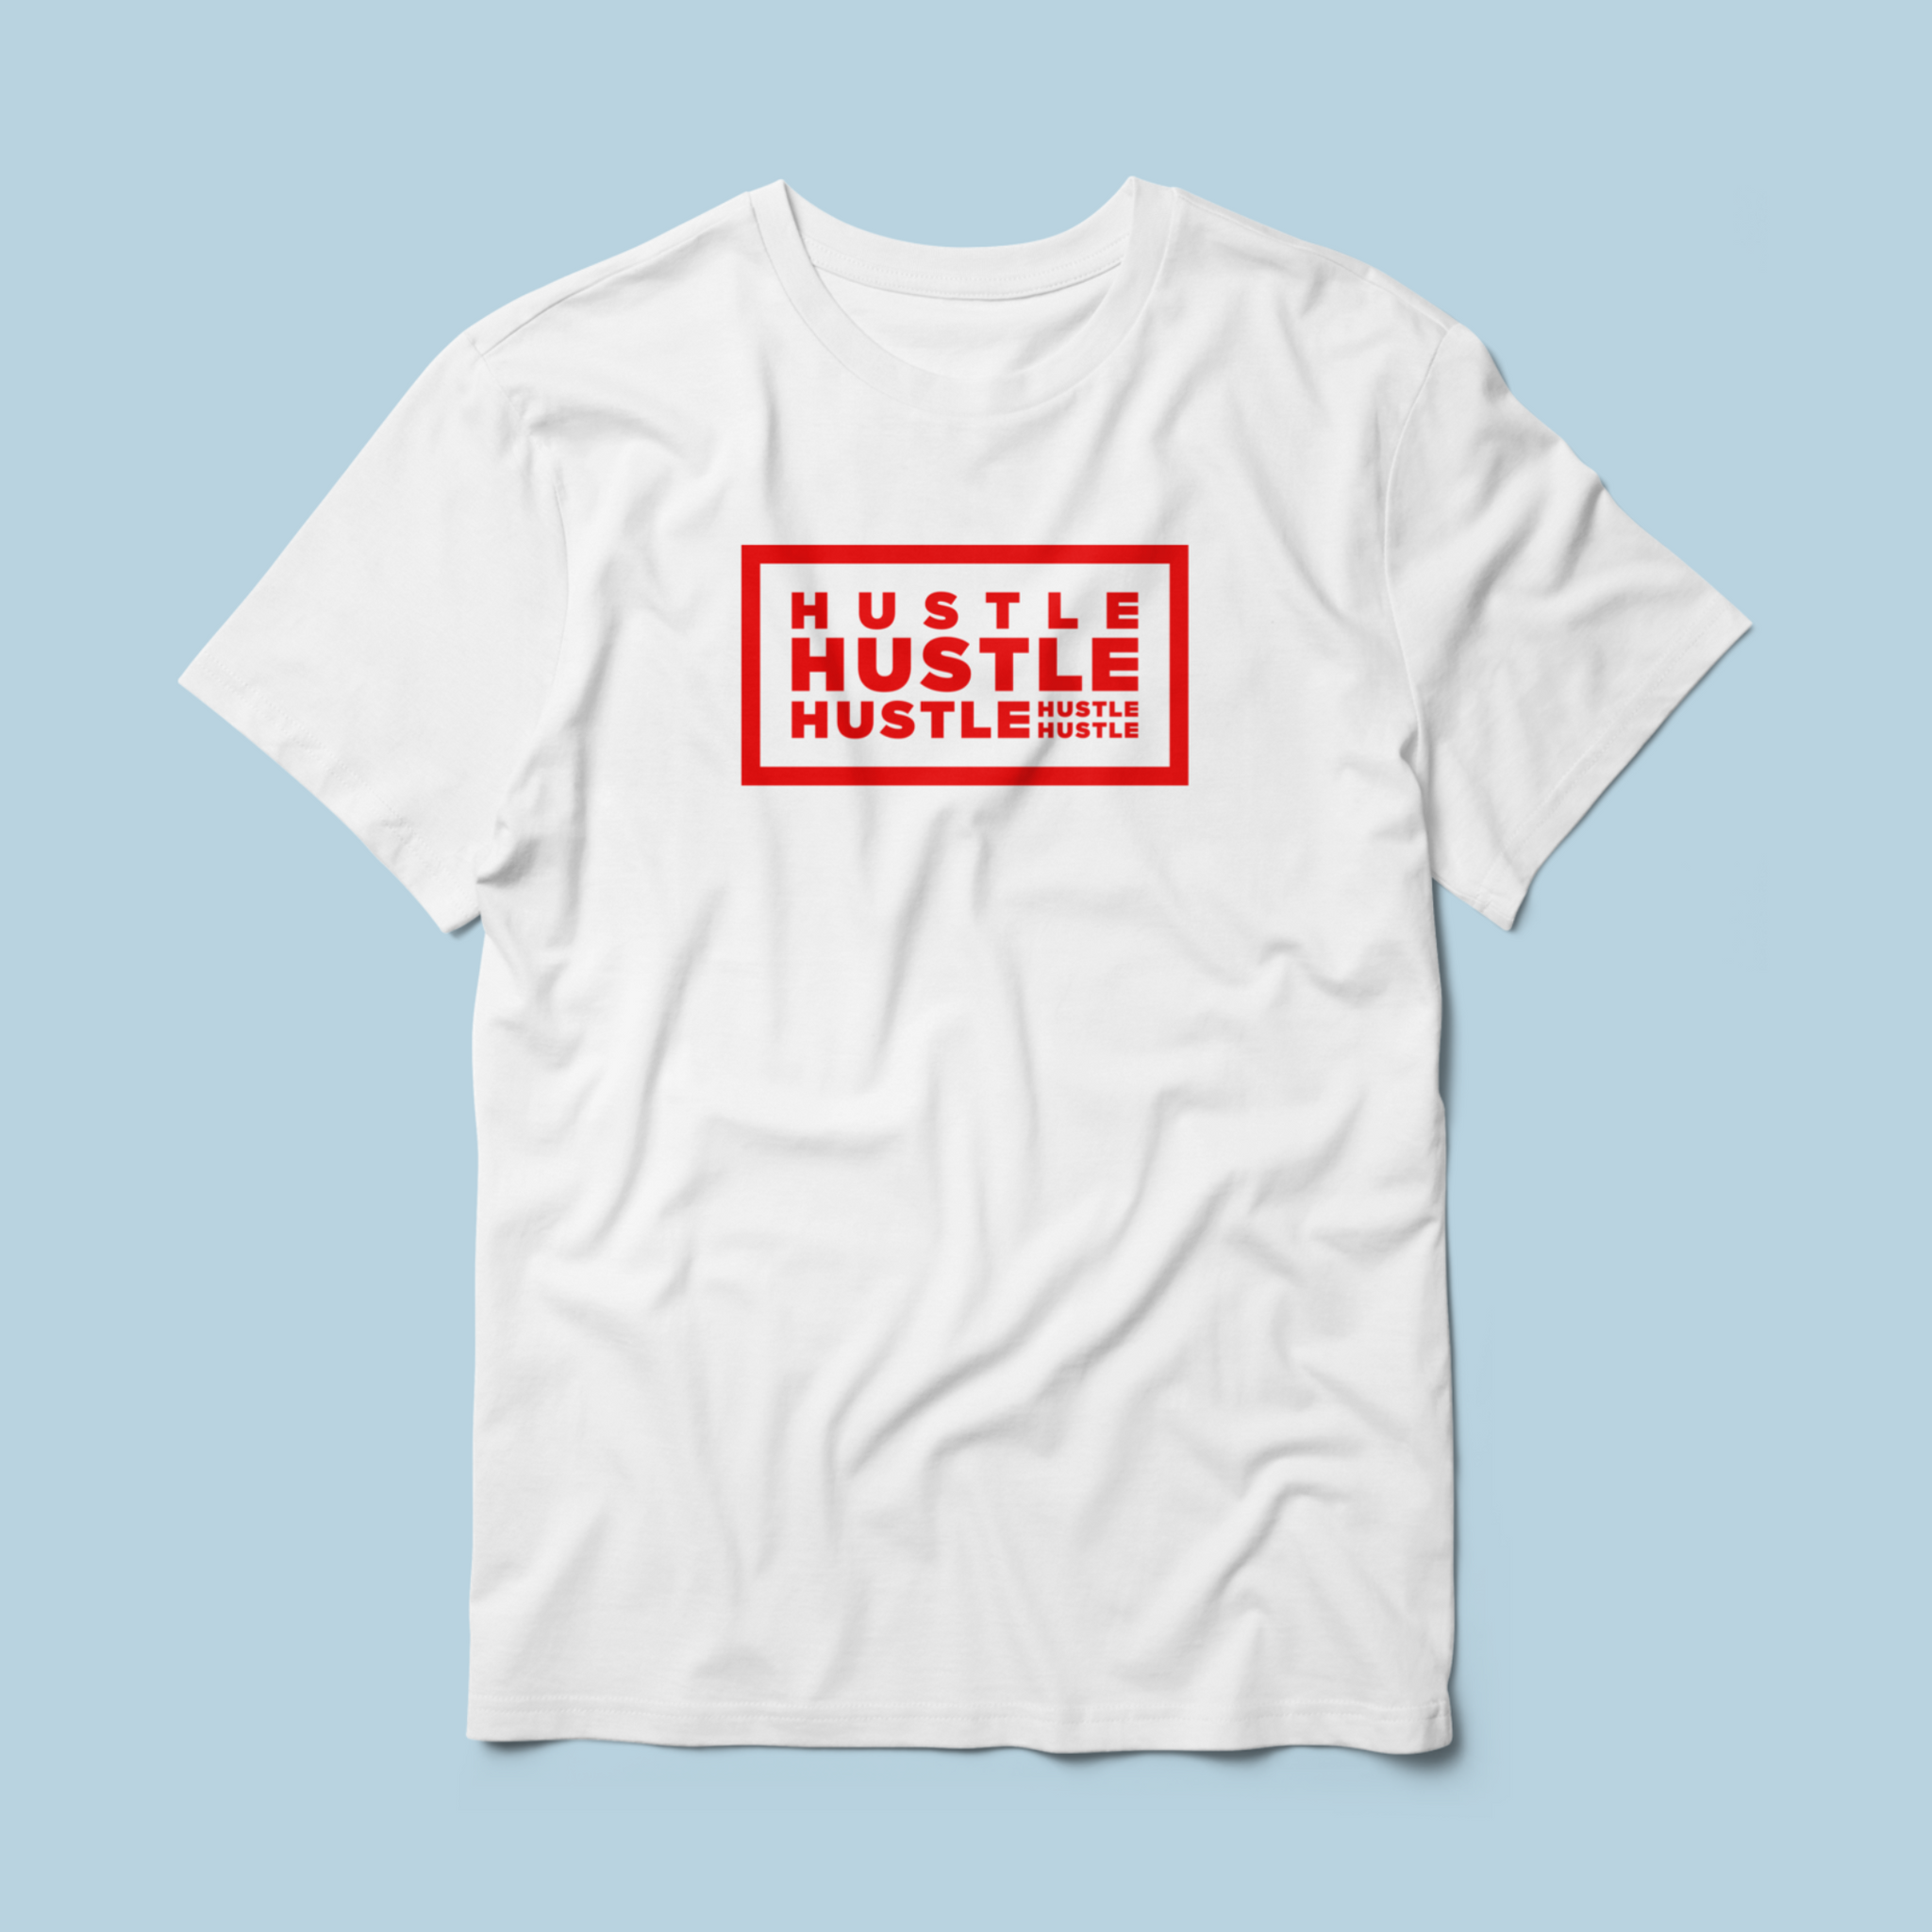 TrueTech HUSTLE! T-Shirt for Men (Red)